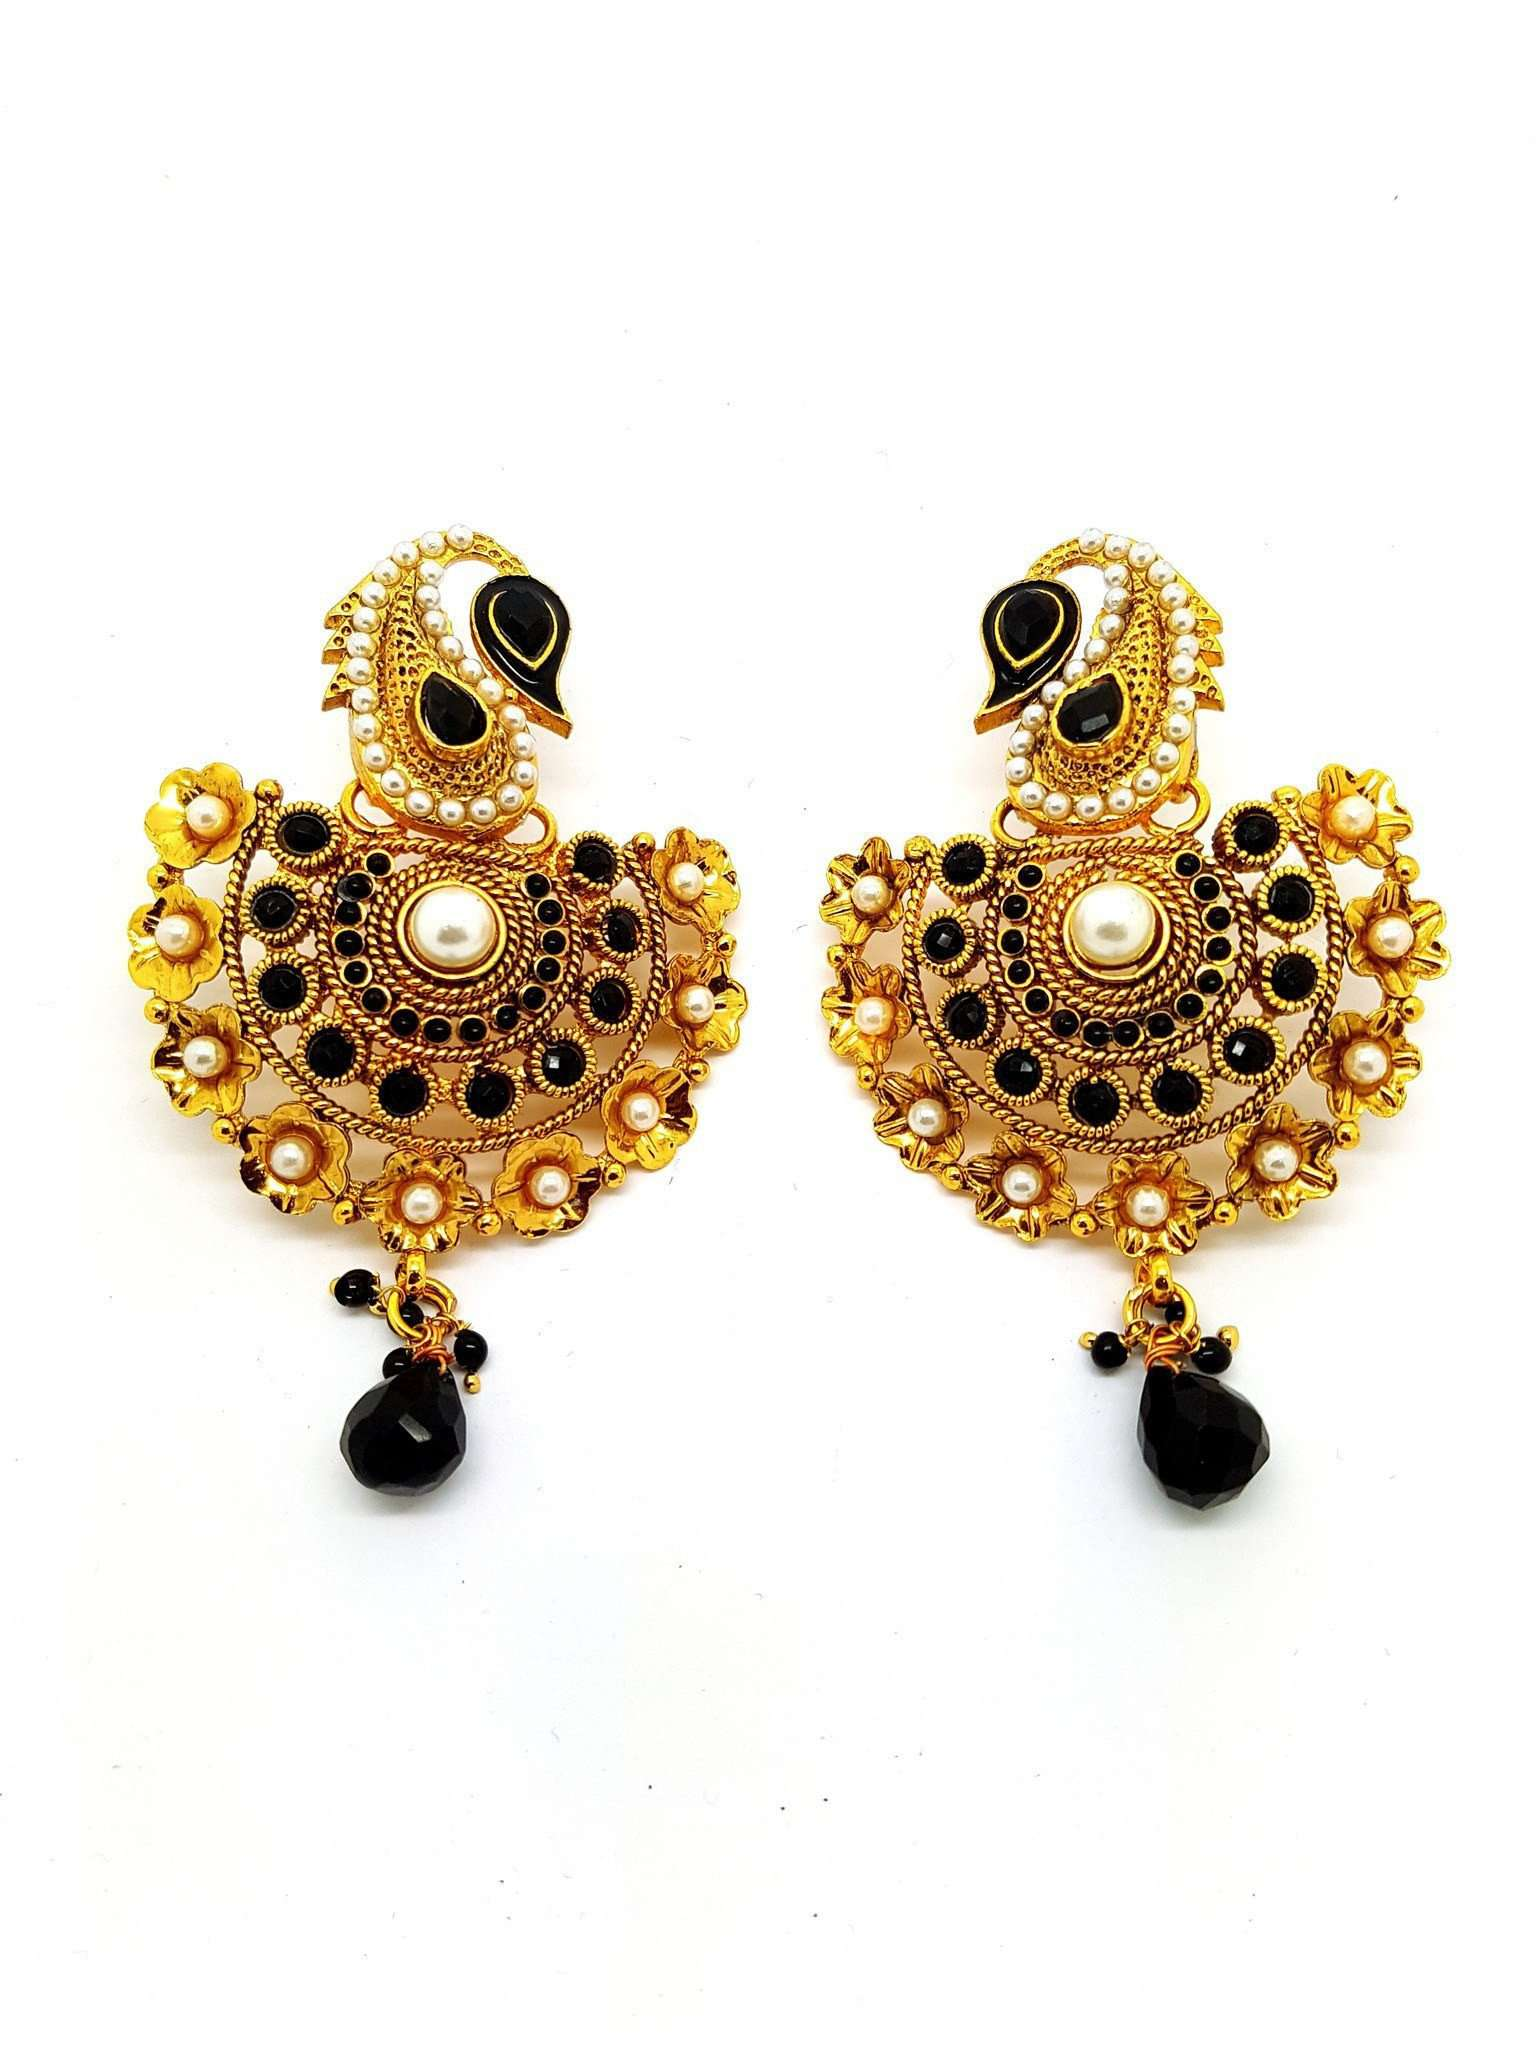 Prachy Creations : DJ 22254 - r.p 0716 - Earrings, Large / Black / Gold